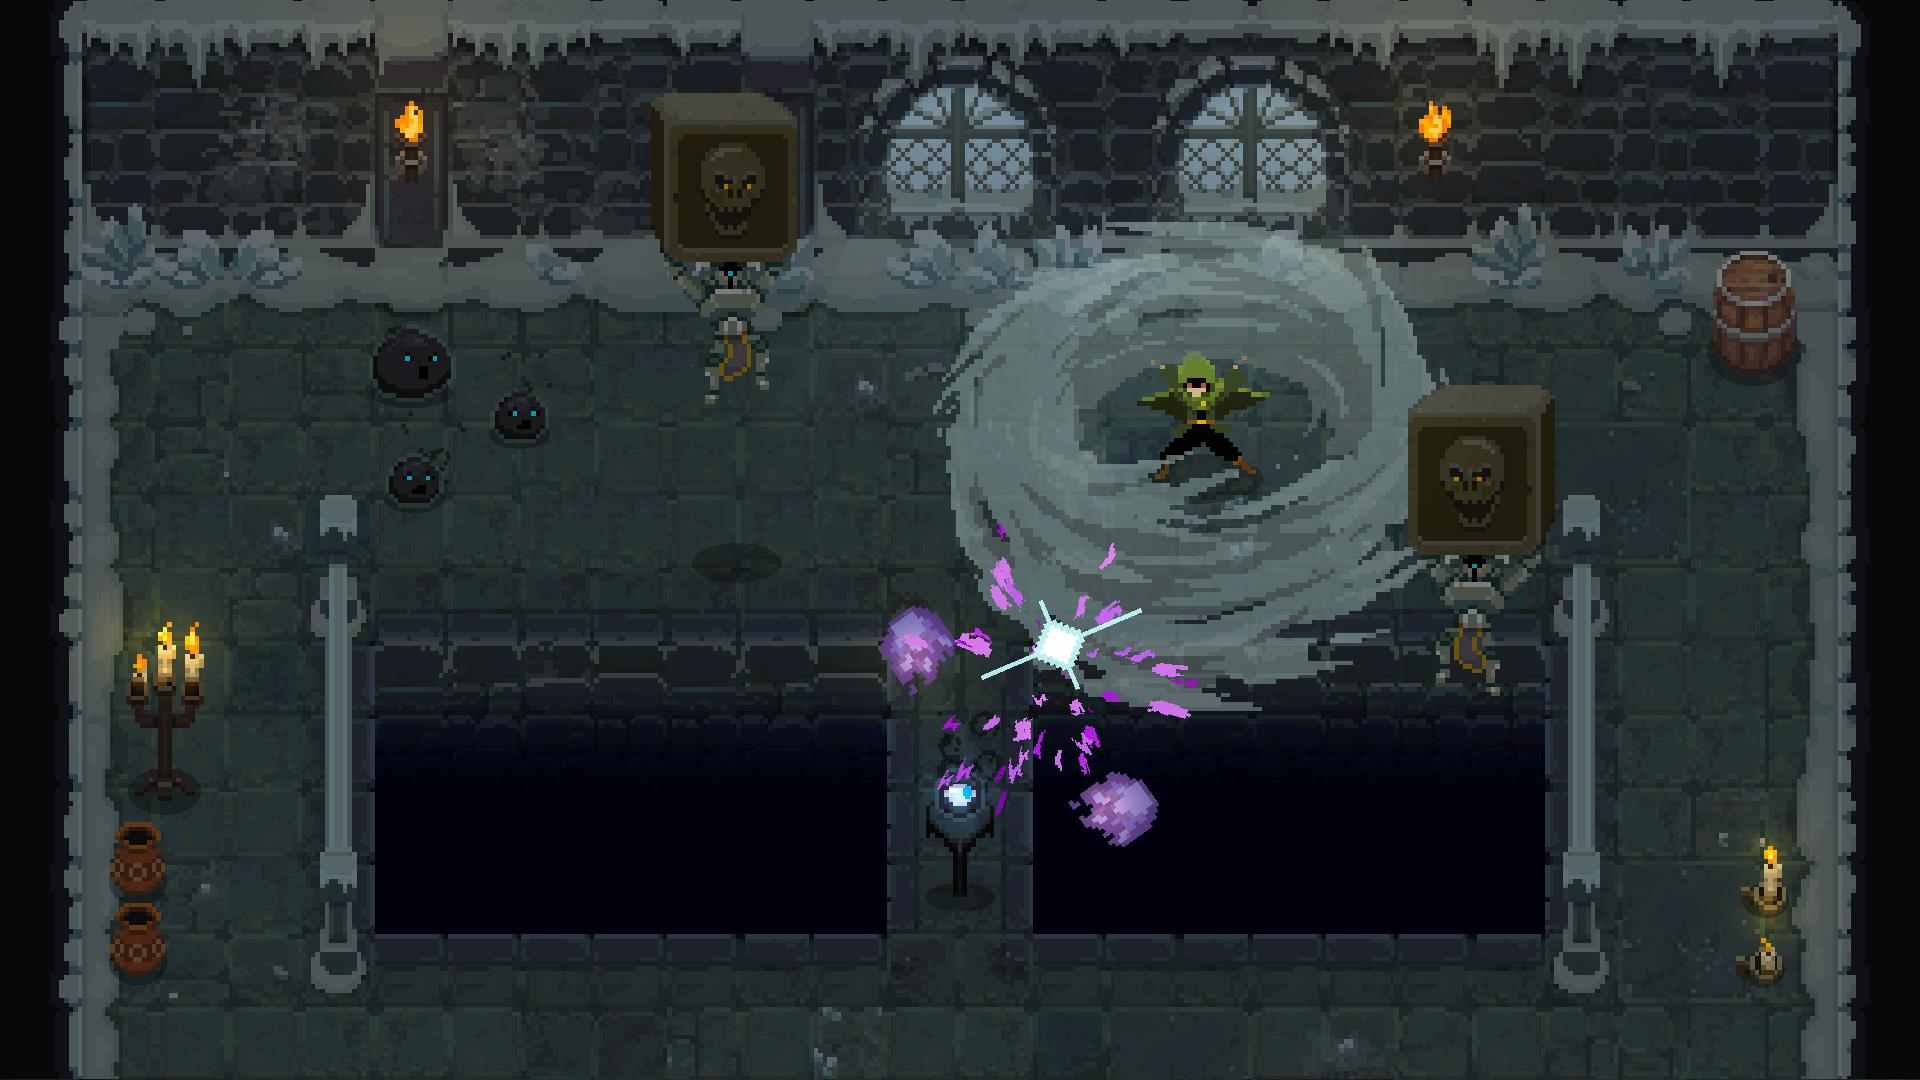 Wizard of Legend is a 2D dungeon crawler where wizards aren't boring